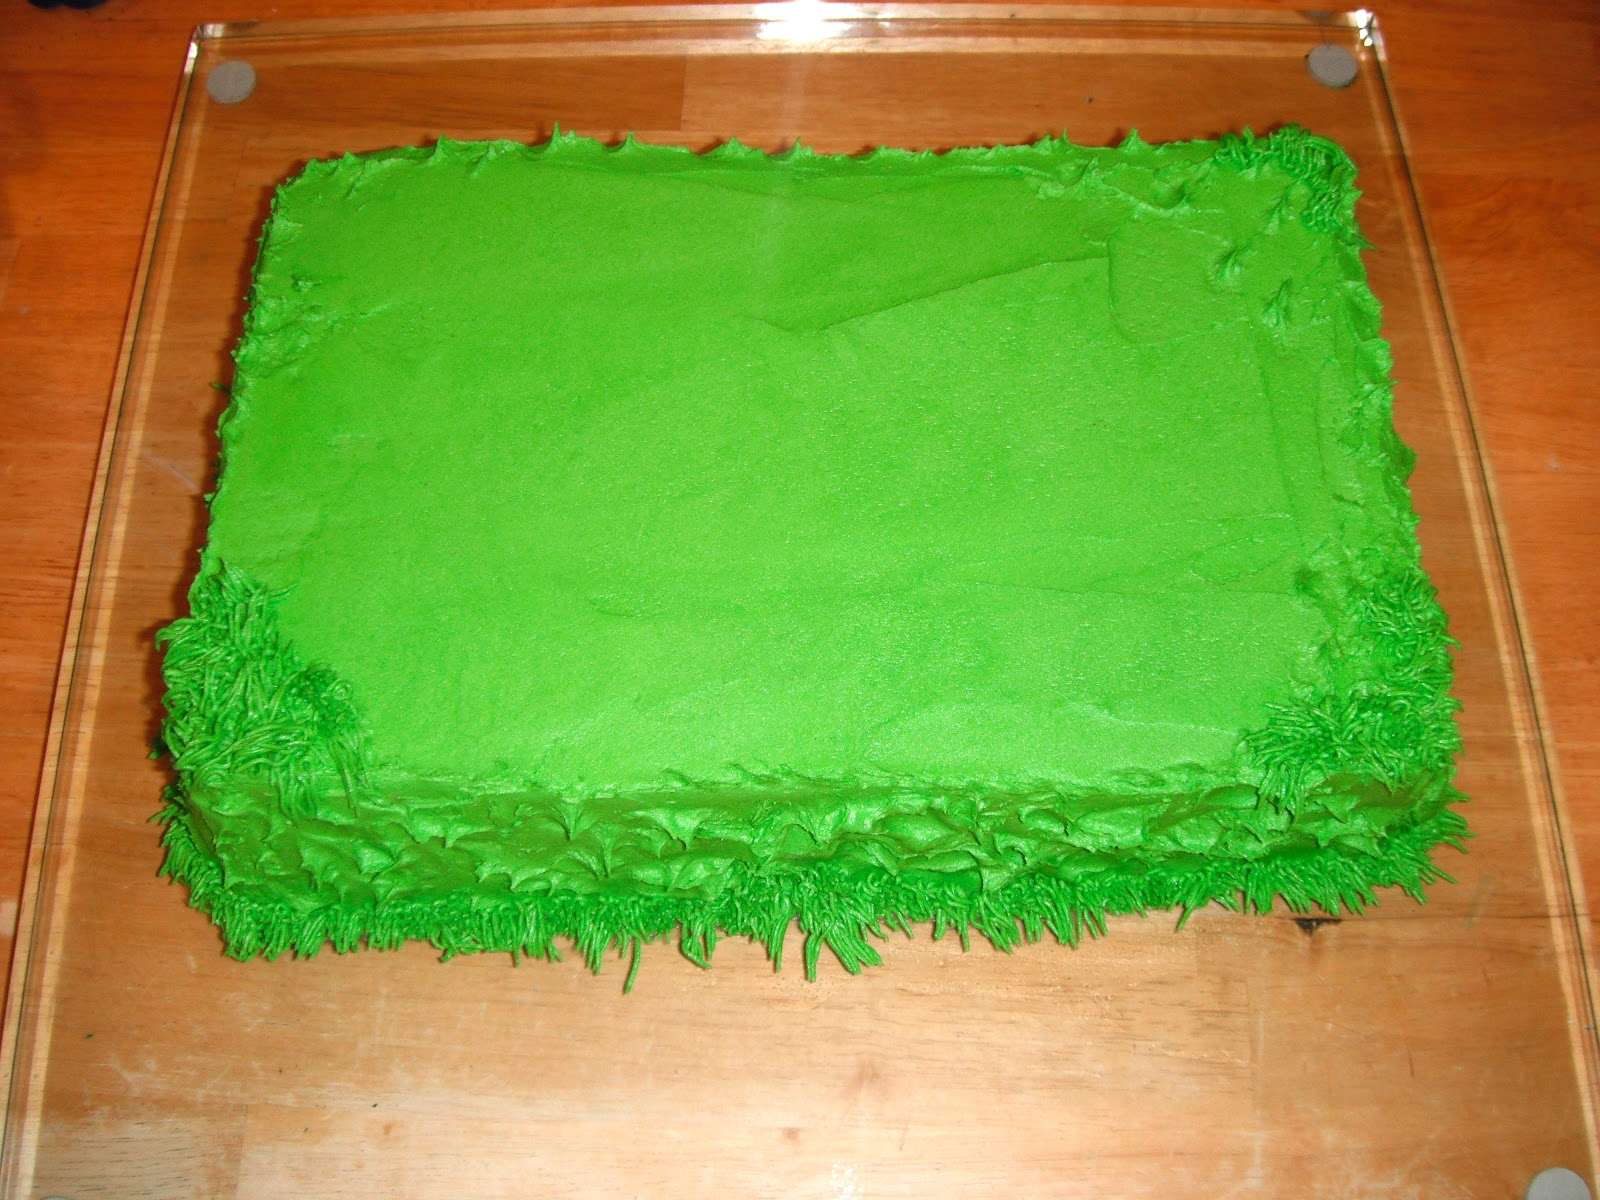 P-ART-Y: How to Make a Soccer Goal Post Cake